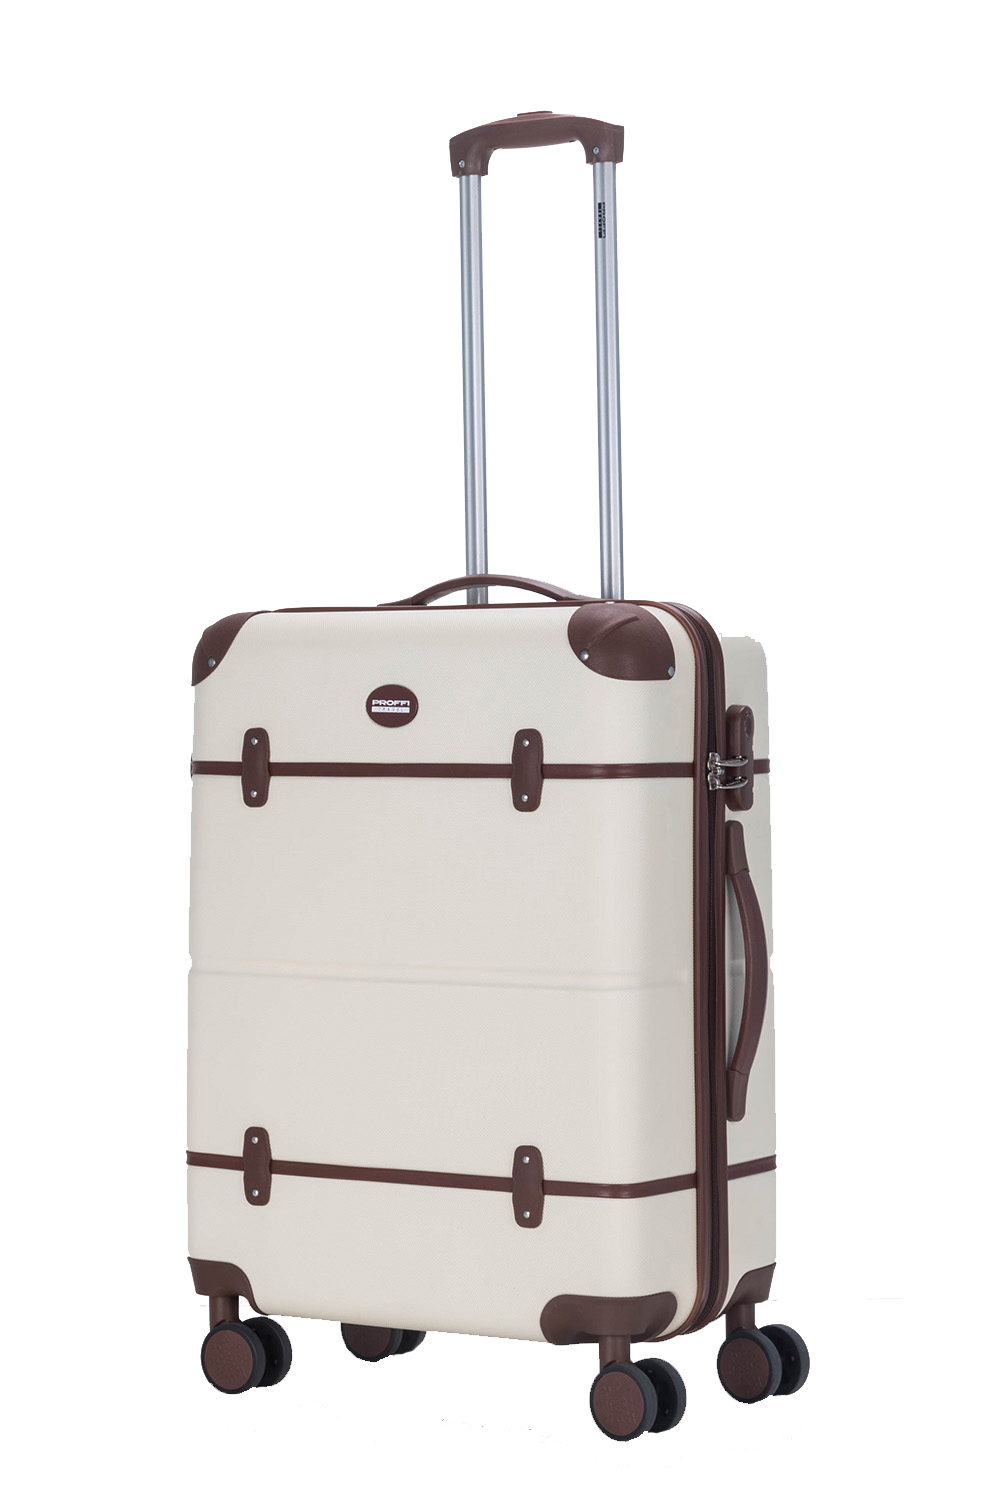 Plastic suitcase PROFFI TRAVEL Tour Vintage PH9729, with combination lock, beige, L scyl with coded lock ni5l travel luggage suitcase strap baggage backpack belt